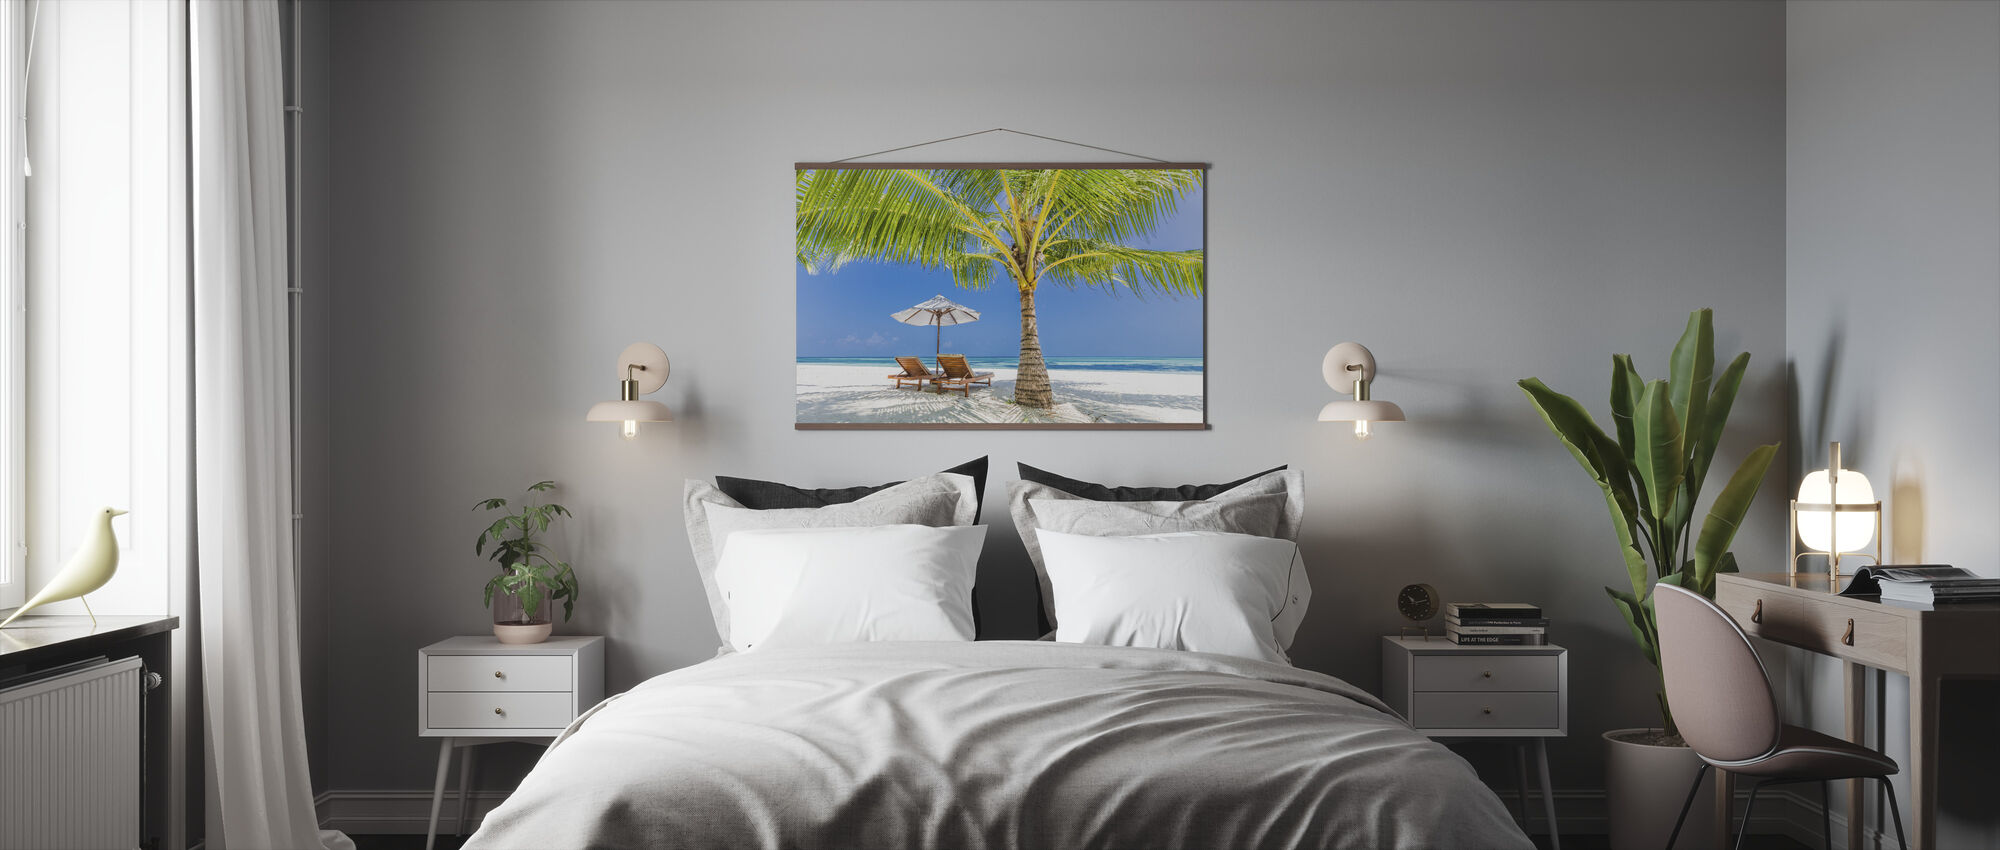 Tranquil Beach - Poster - Bedroom